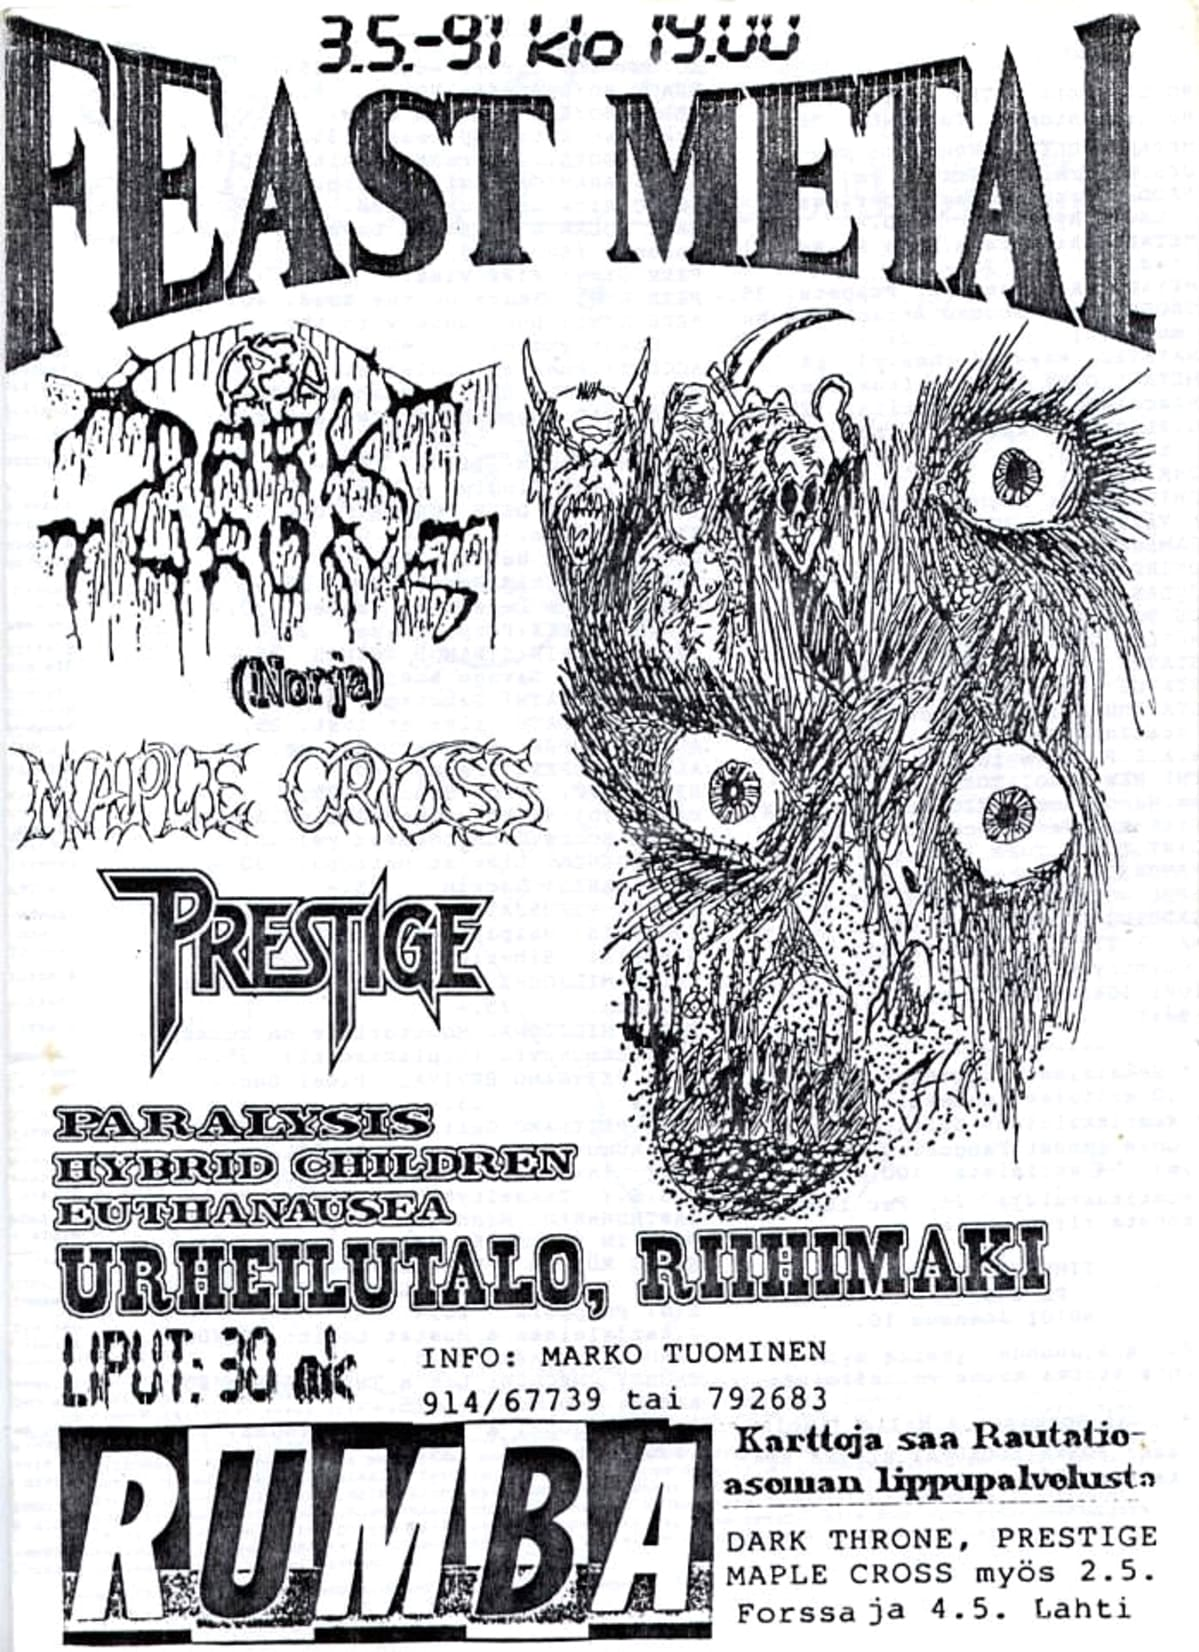 Rotting Ways to Misery, death metal